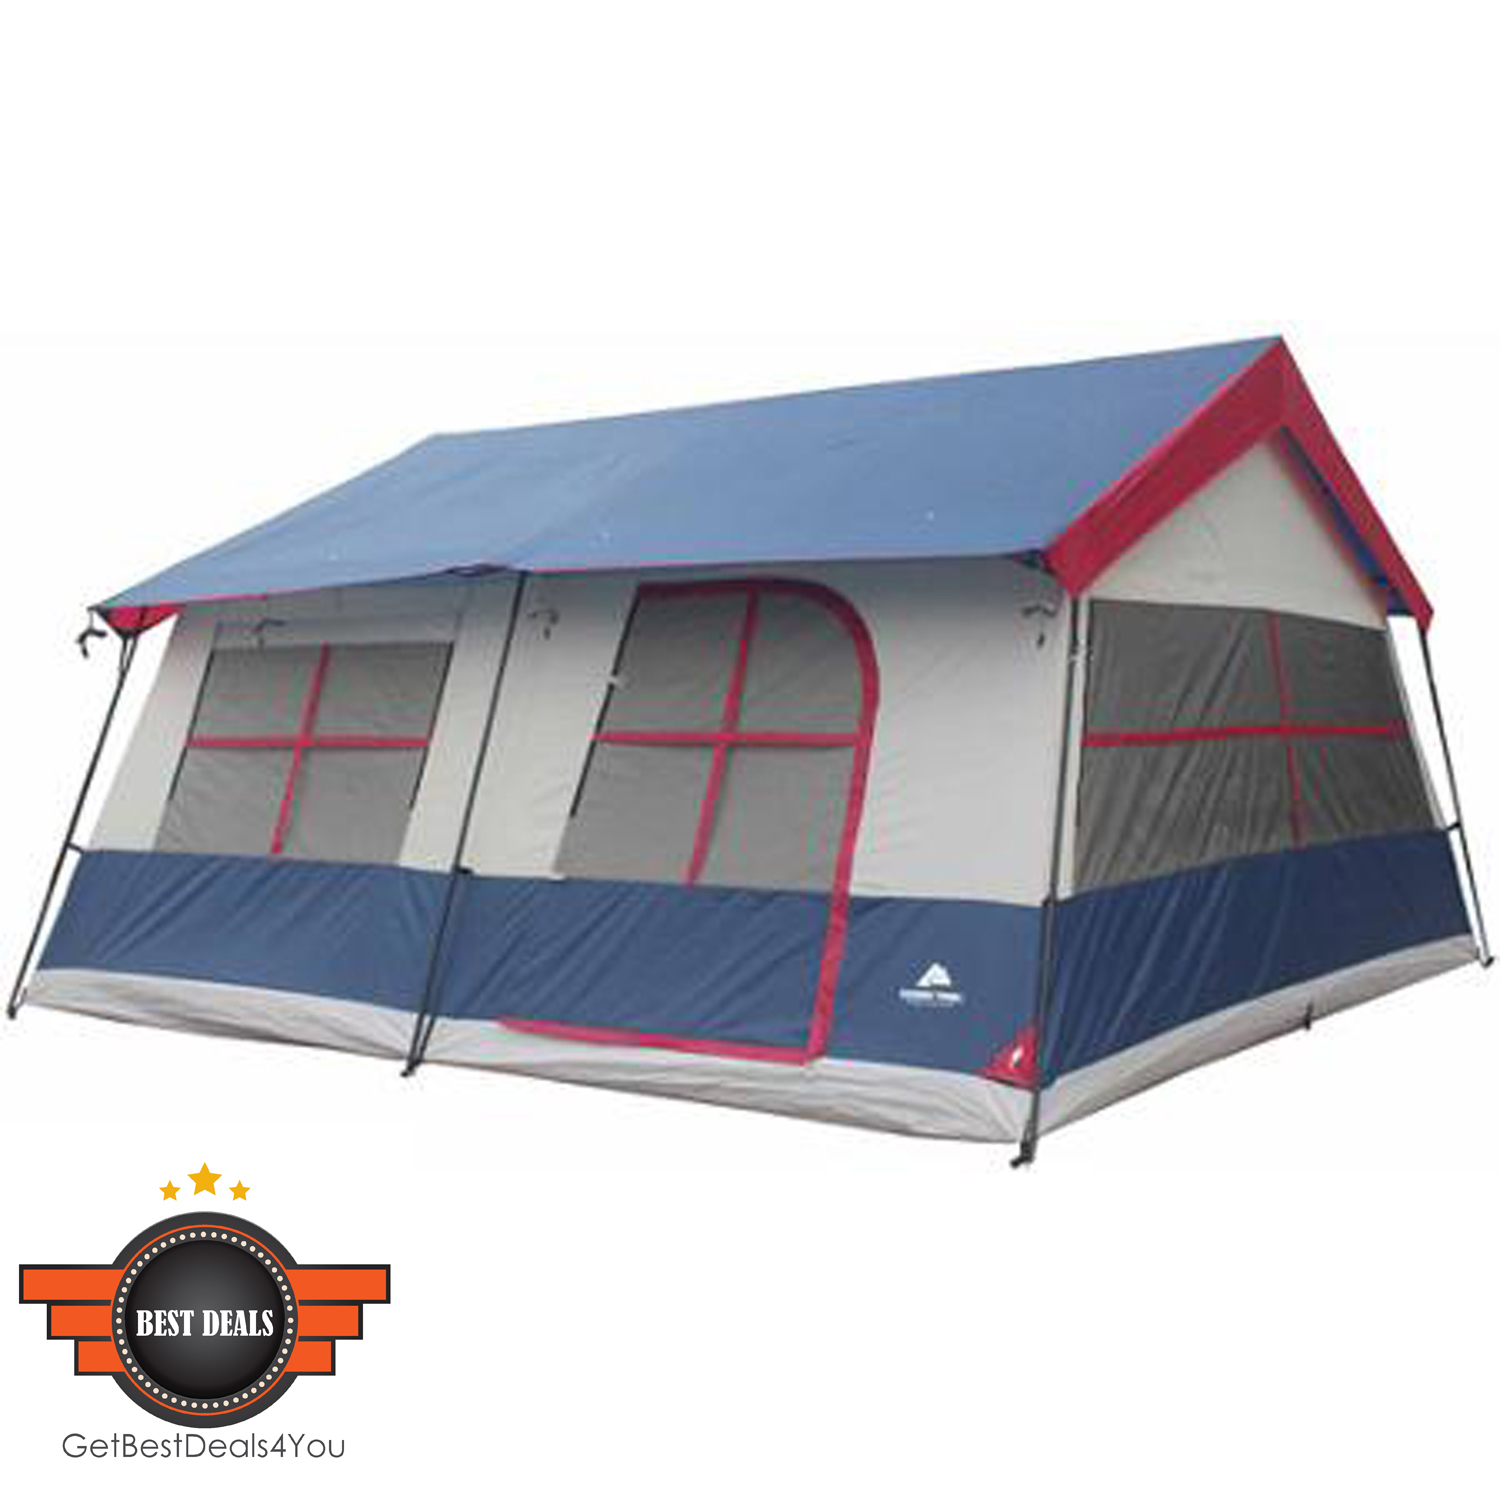 Camping Ozark 14 Person 3 Room Cabin Tent Waterproof Fishing Large Family